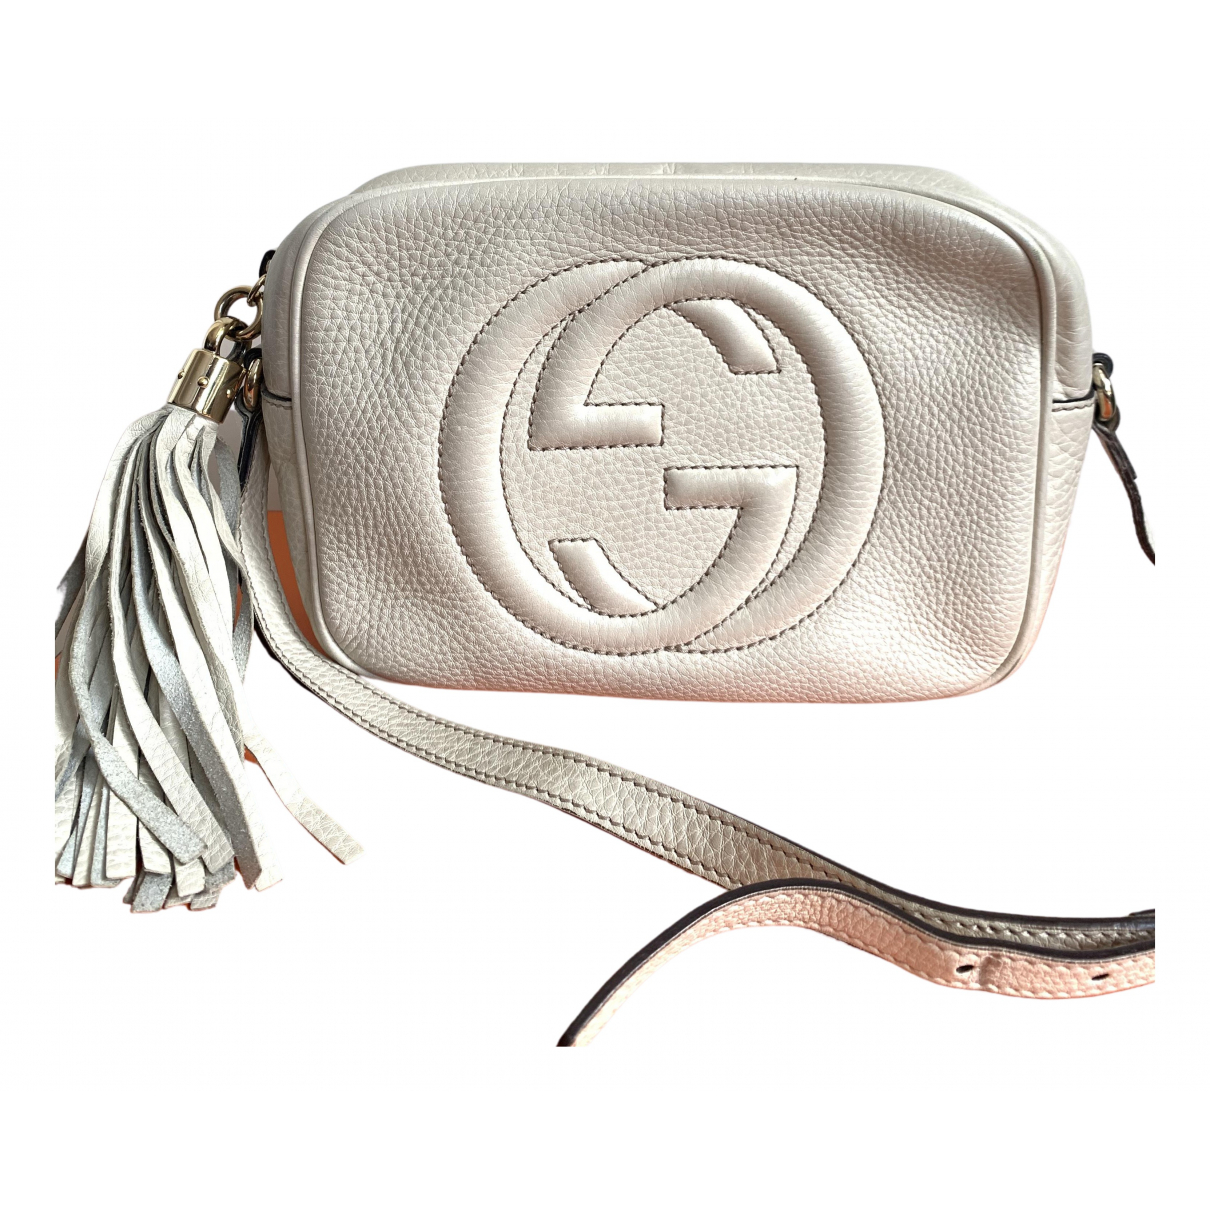 Gucci Soho White Leather handbag for Women \N